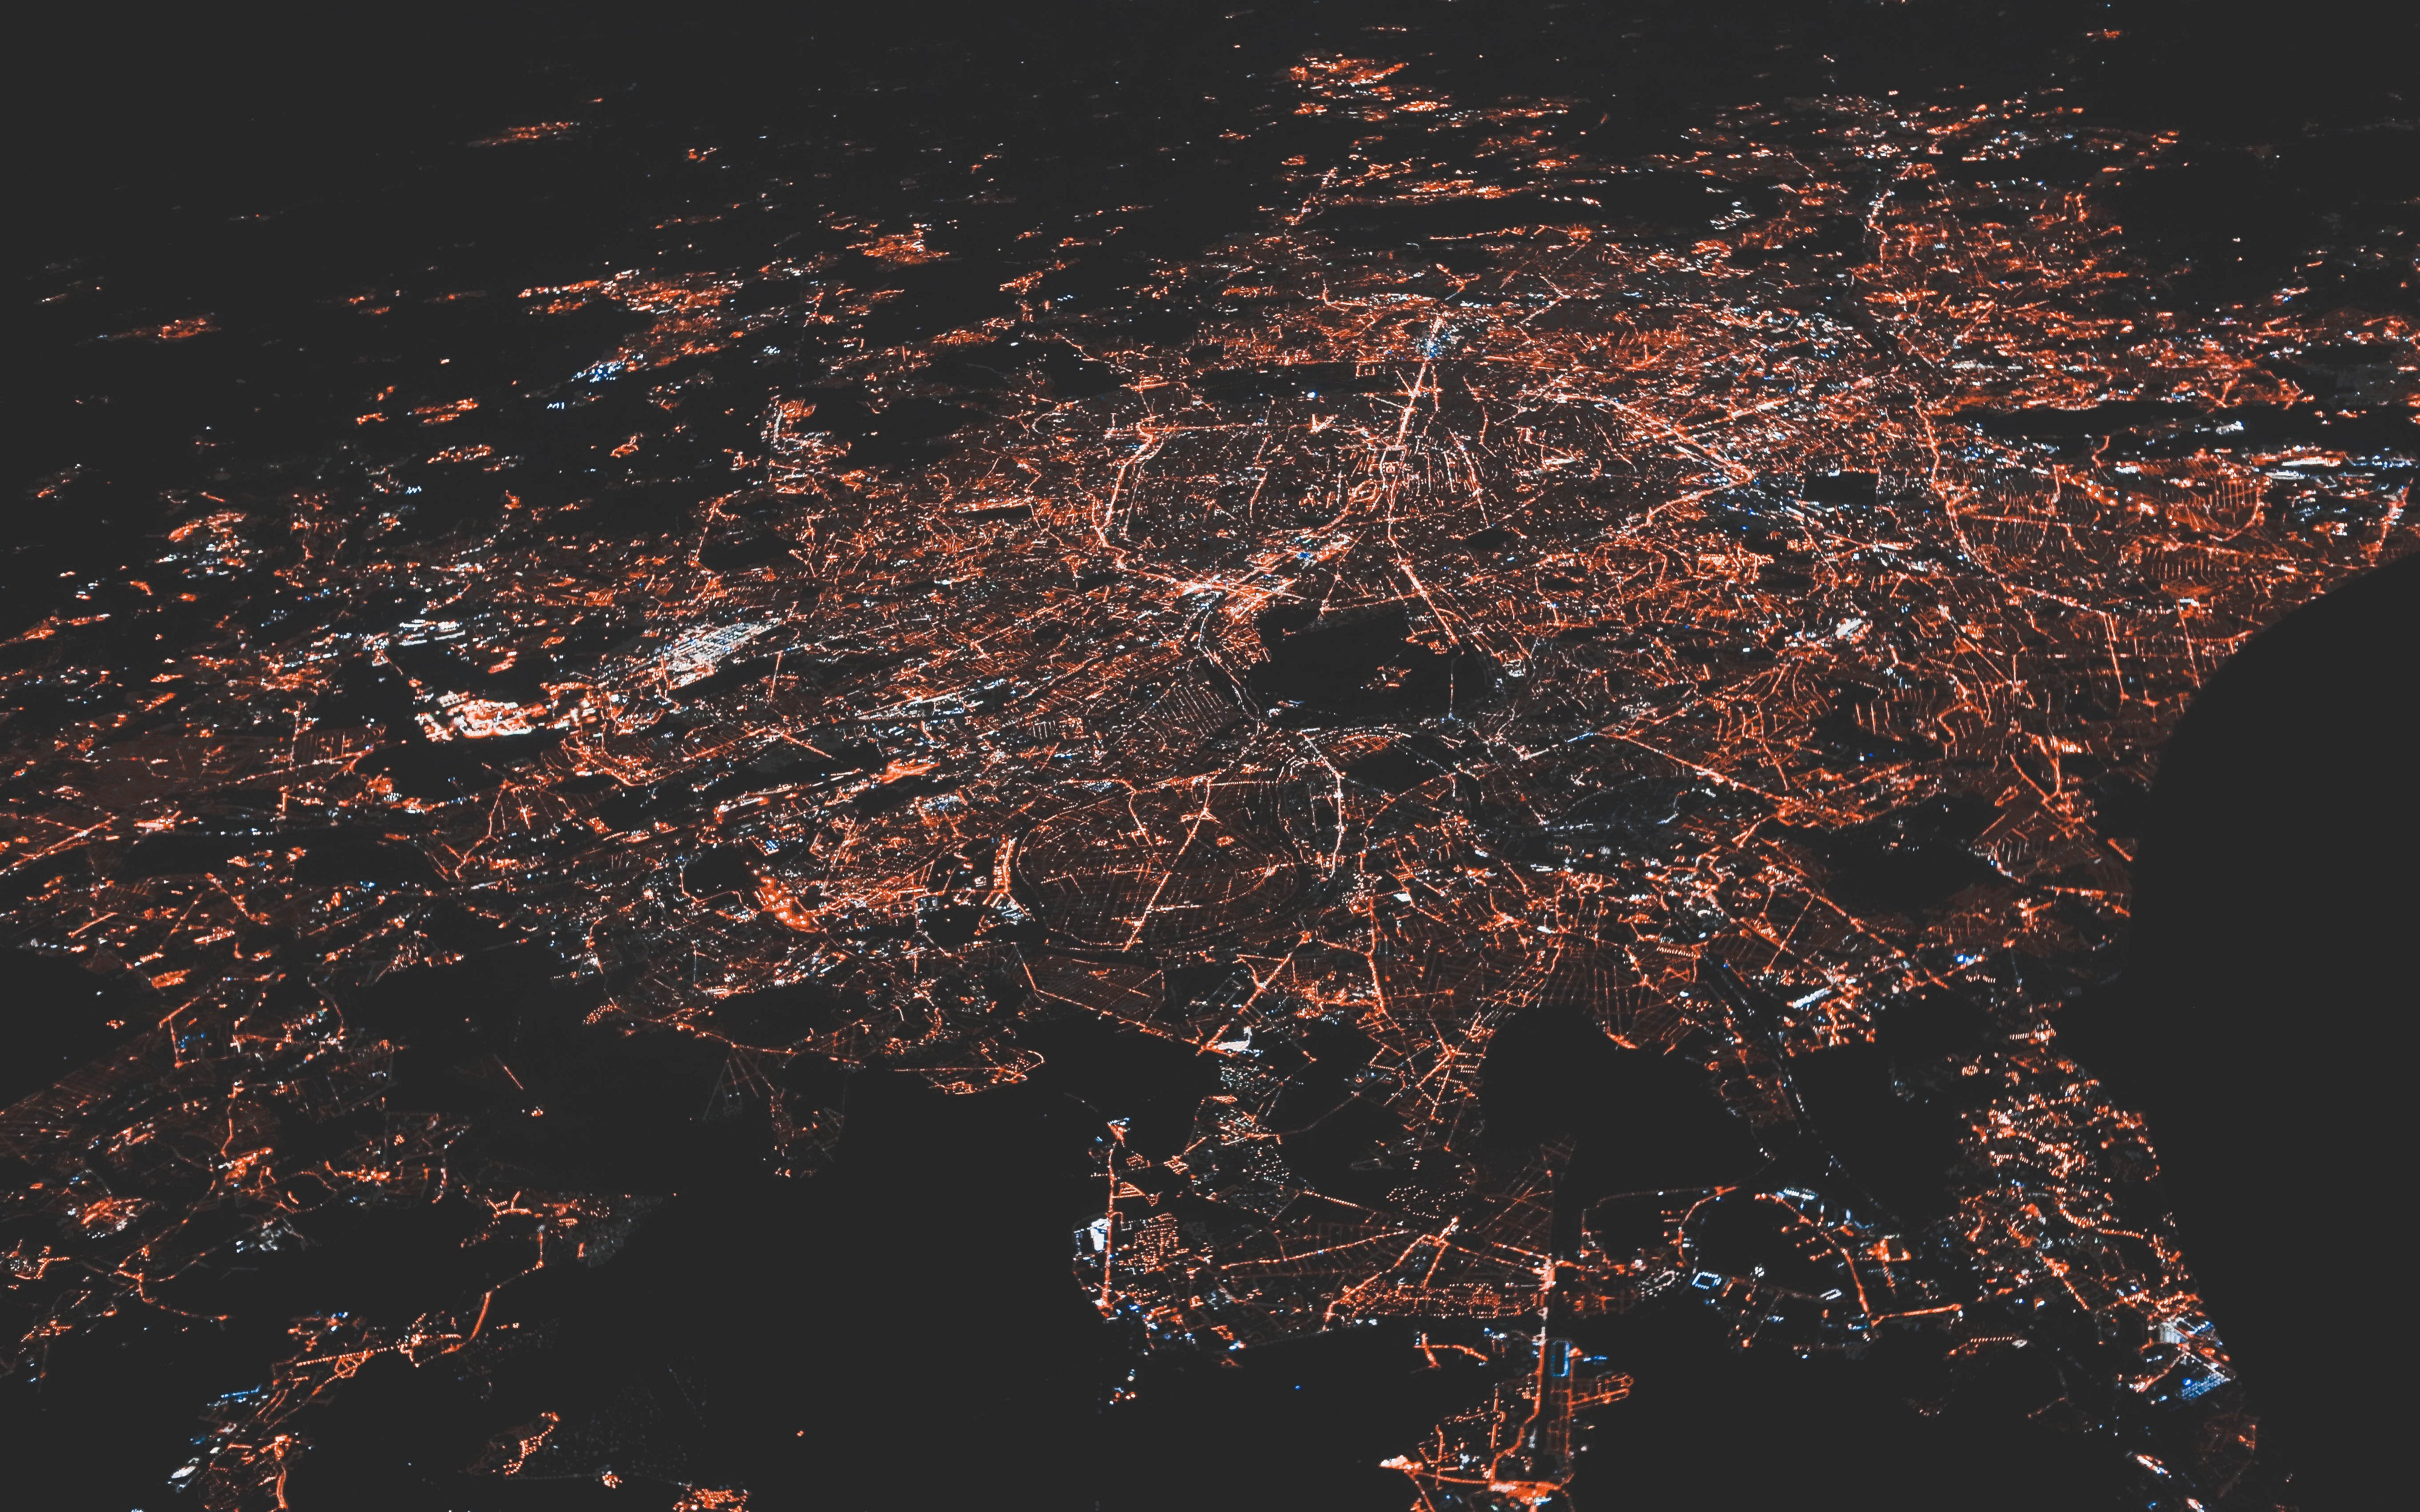 nighttime aerial photo of a city, streetlights and roads visible.